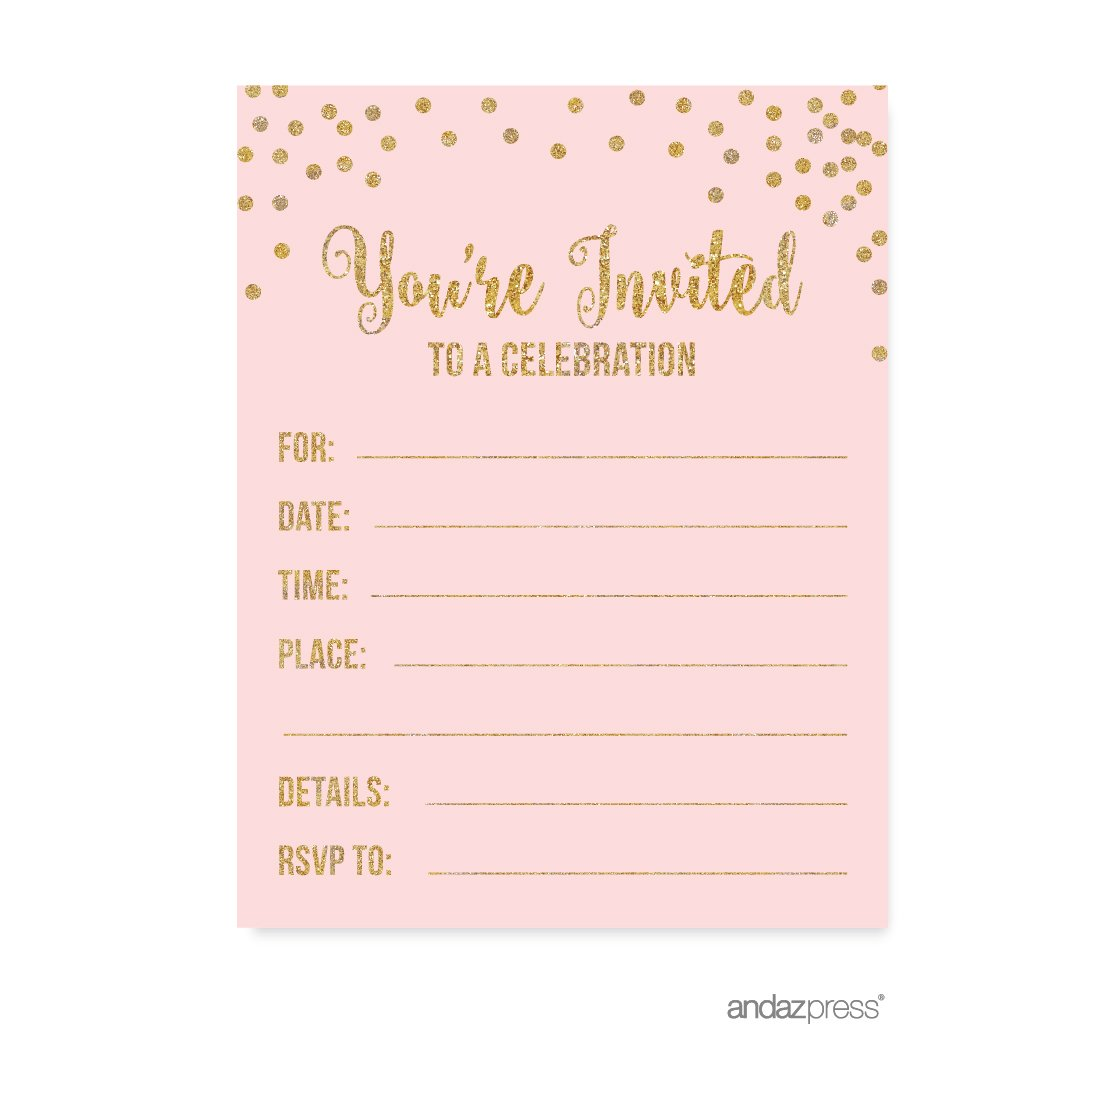 Amazon Andaz Press Blush Pink Gold Glitter Girl's 1st Birthday Party Collection Blank Invitations With Envelopes 20pack Health Personal: Pink And Black Wedding Invitations Blank At Websimilar.org